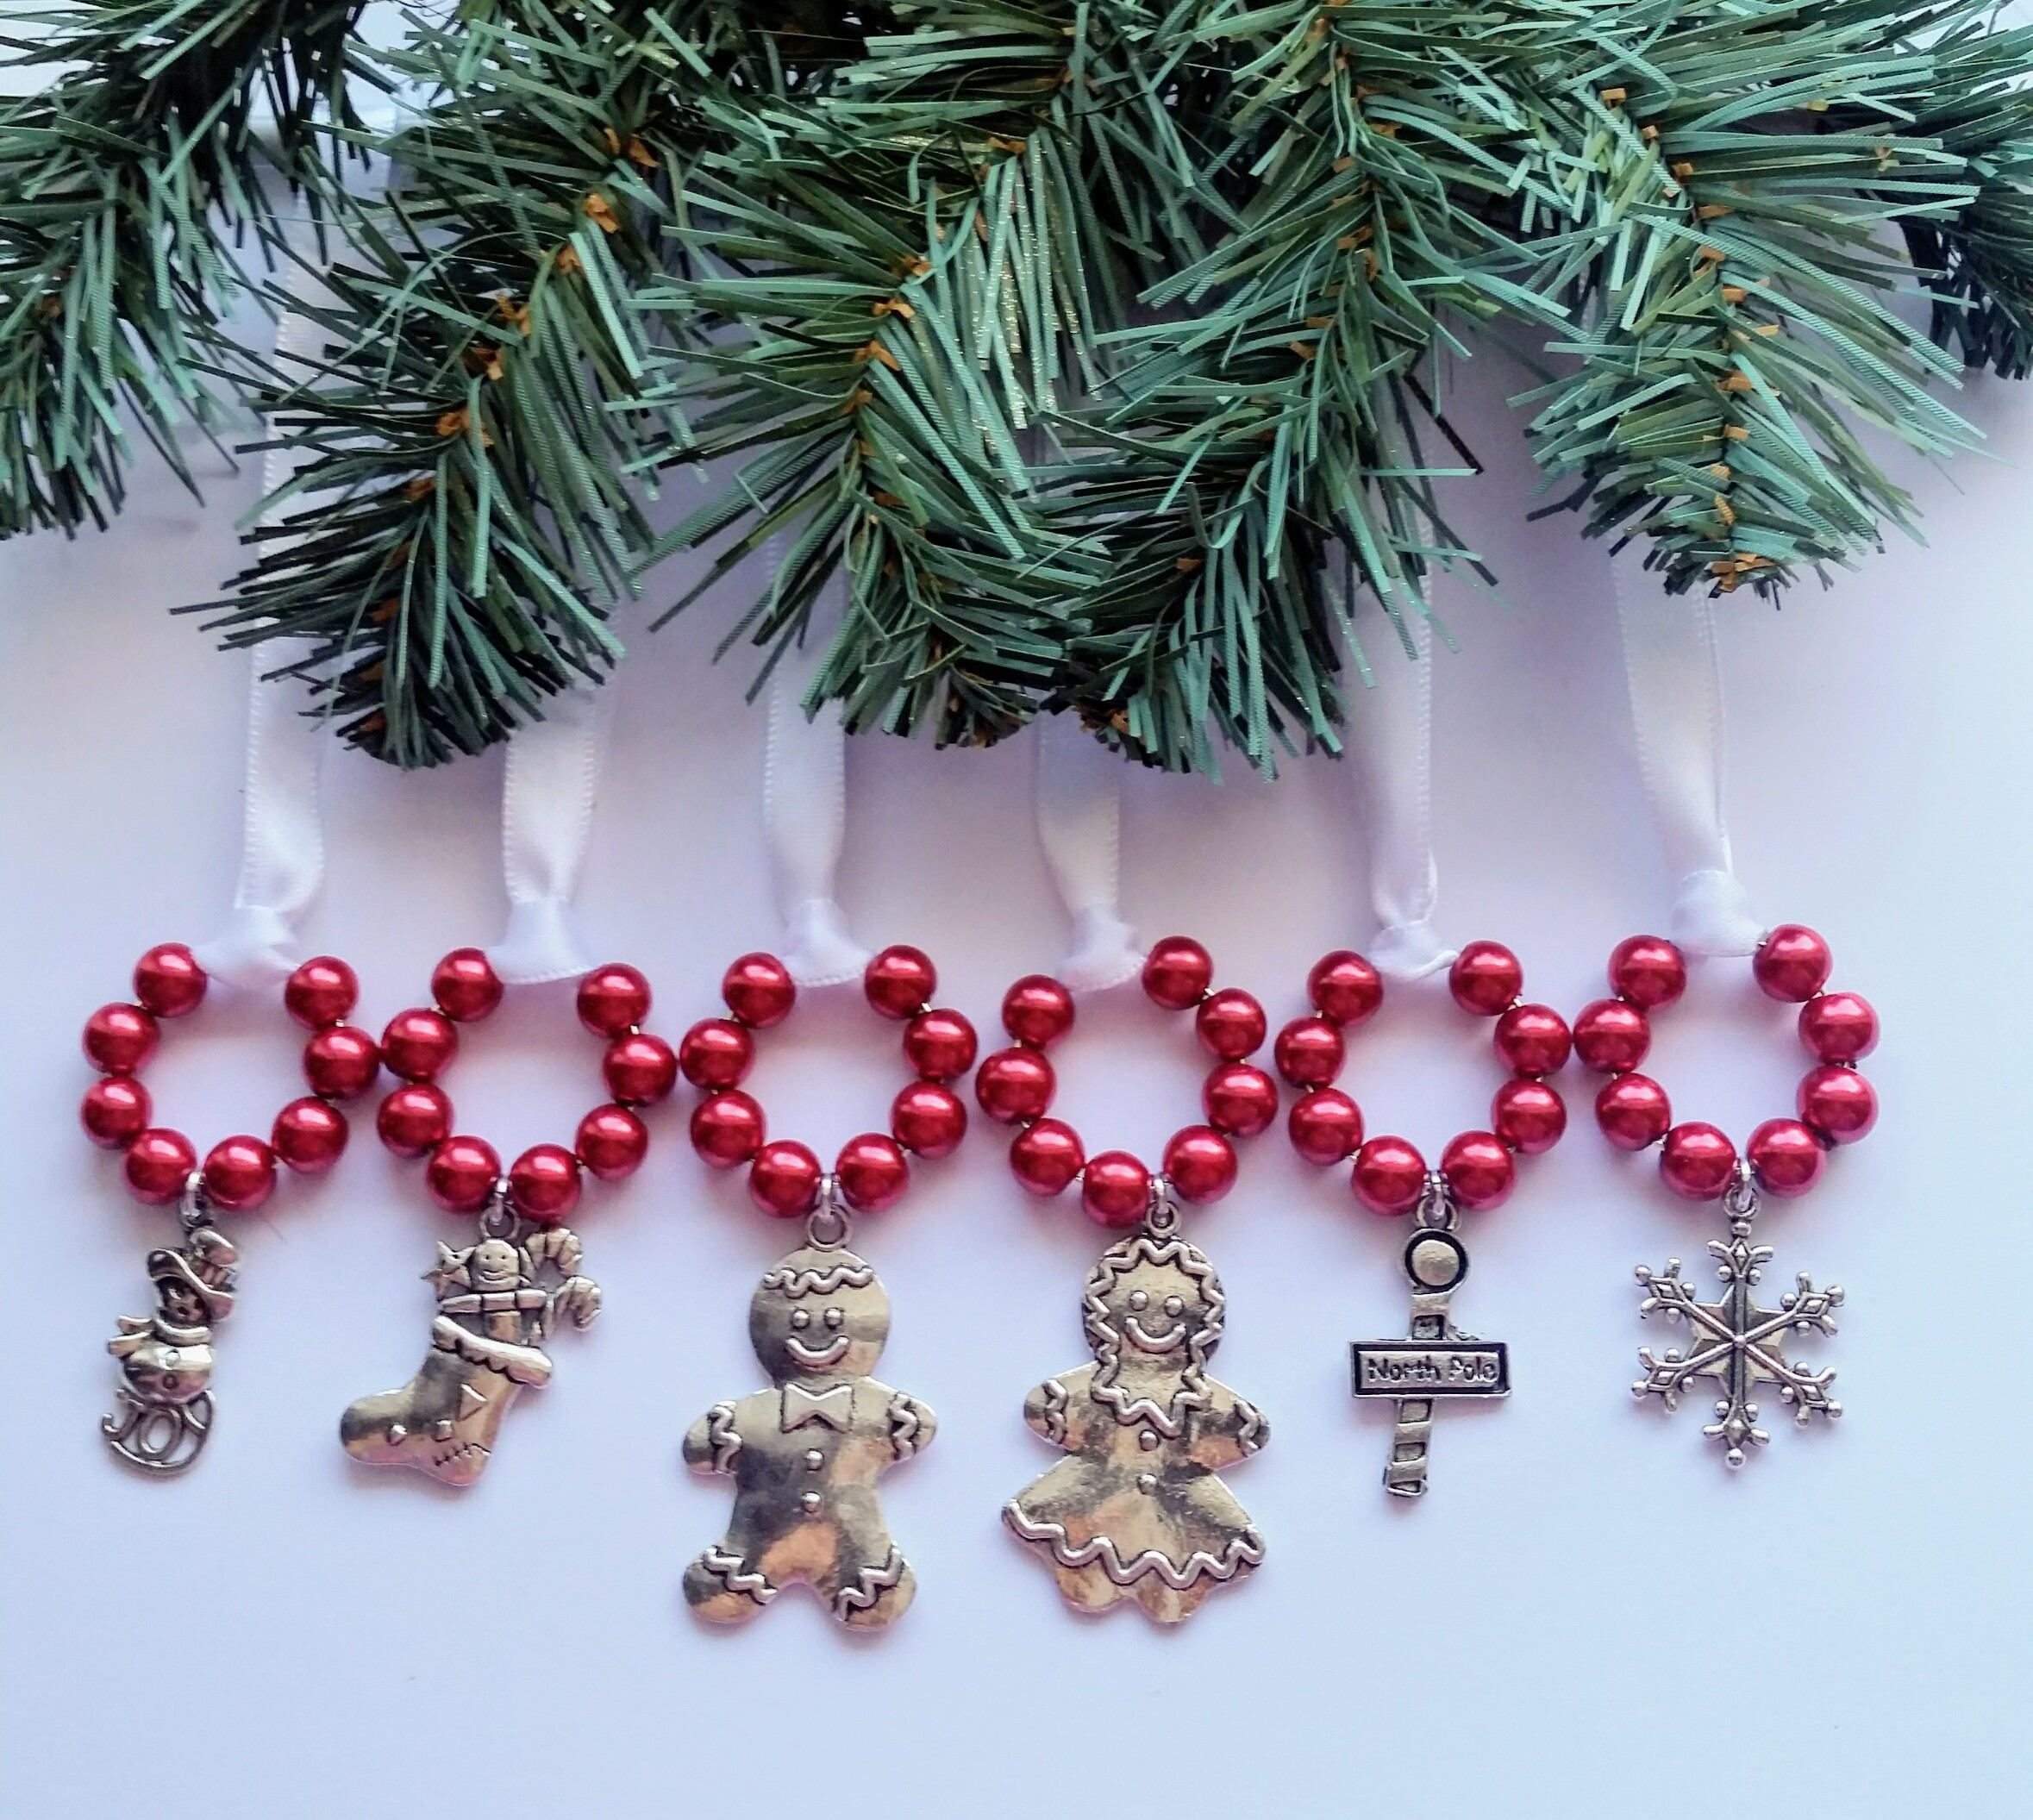 6 Red, White, Ornaments, Christmas, Holidays, Ribbon, Advent, Stocking